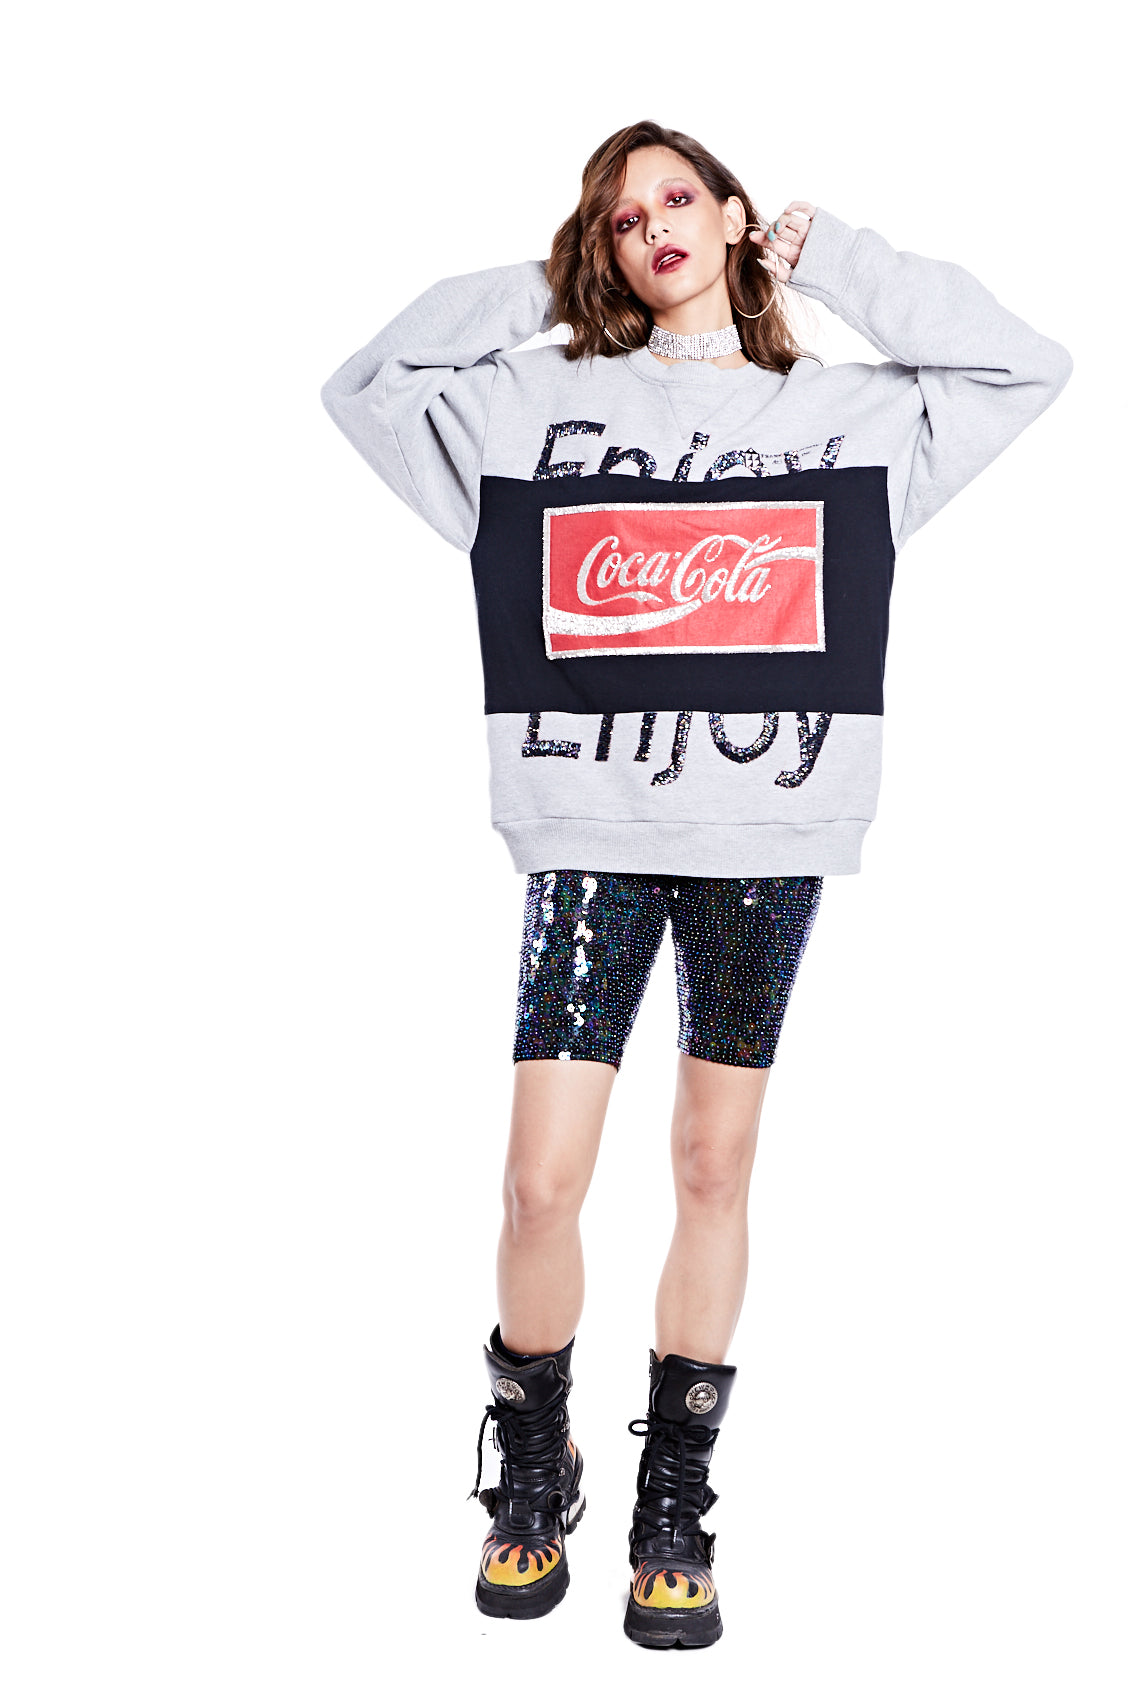 "Coke Sweatshirt Mod - ""ENJOY"" - I LOVE DIY by Panida"